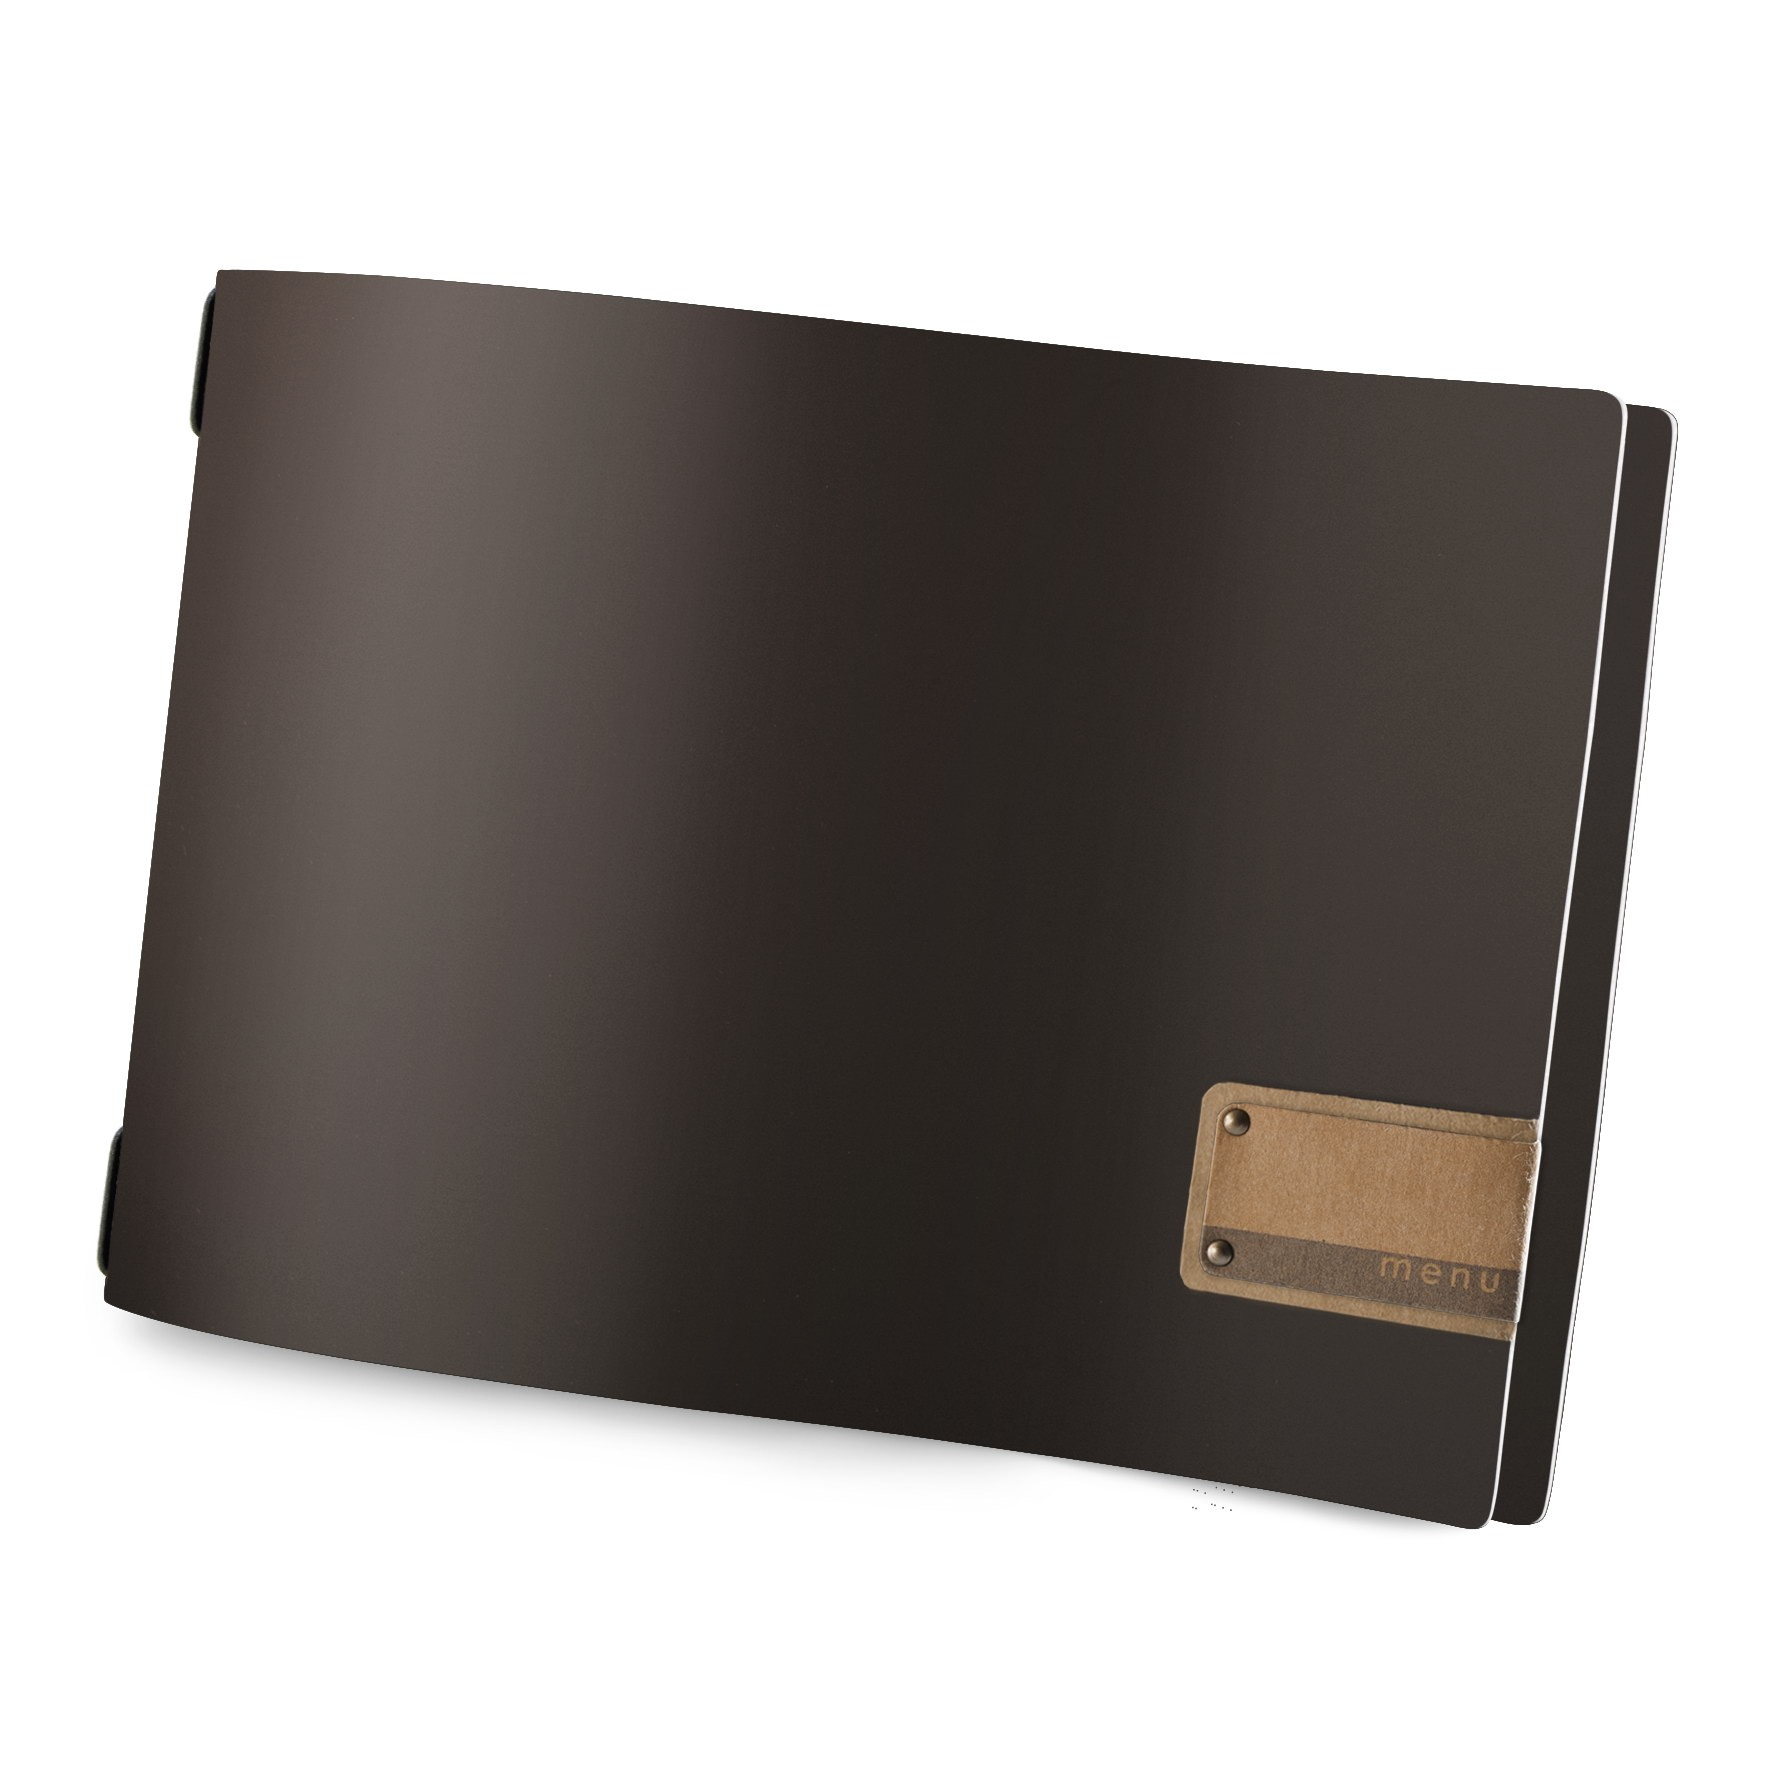 Protège menu A4 HORIZONTAL Fashion marron aspect lisse